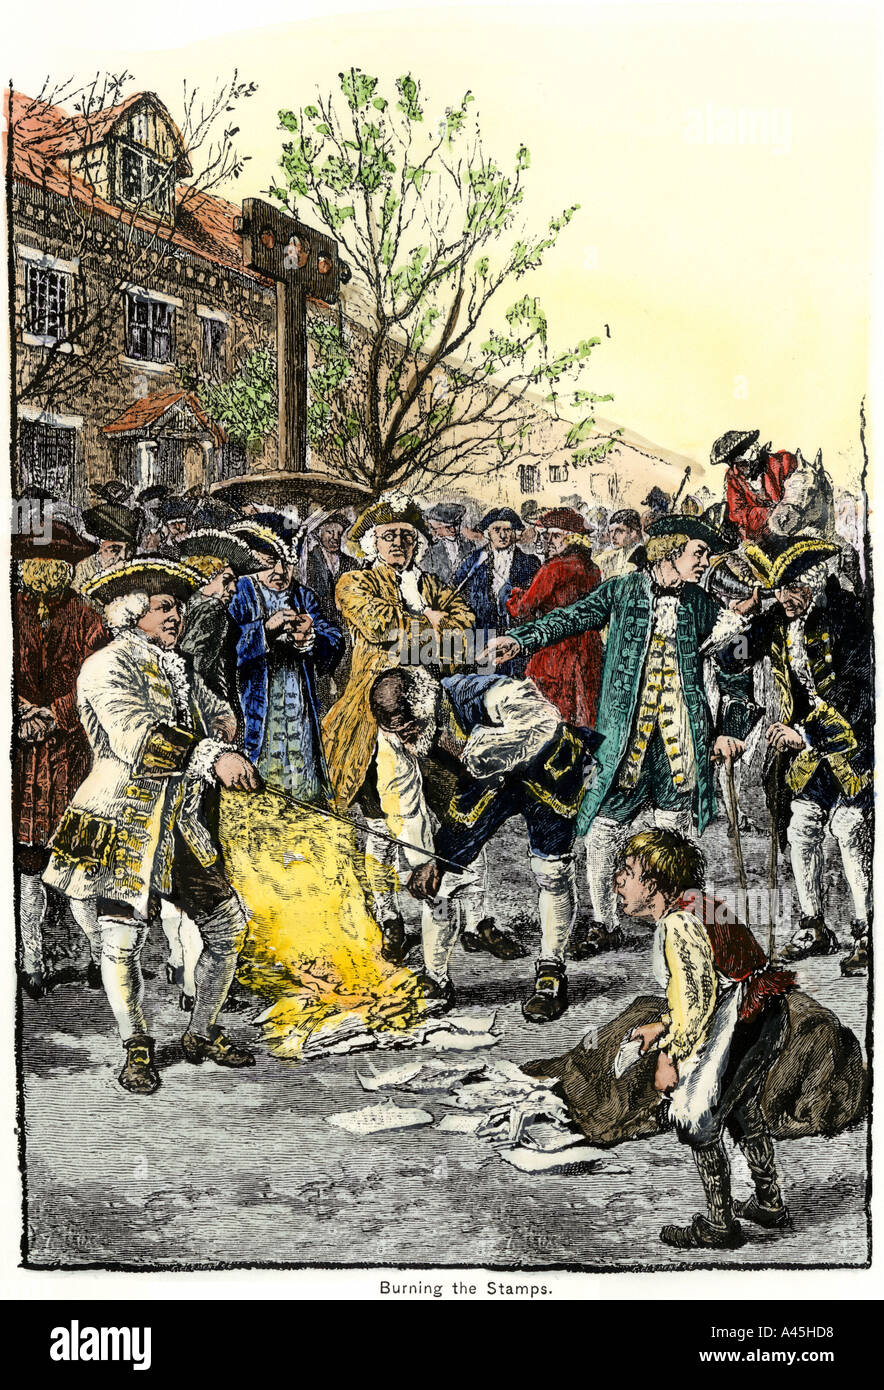 Stamp Act protestors burning stamps in New York City before the American Revolution. Hand-colored woodcut - Stock Image